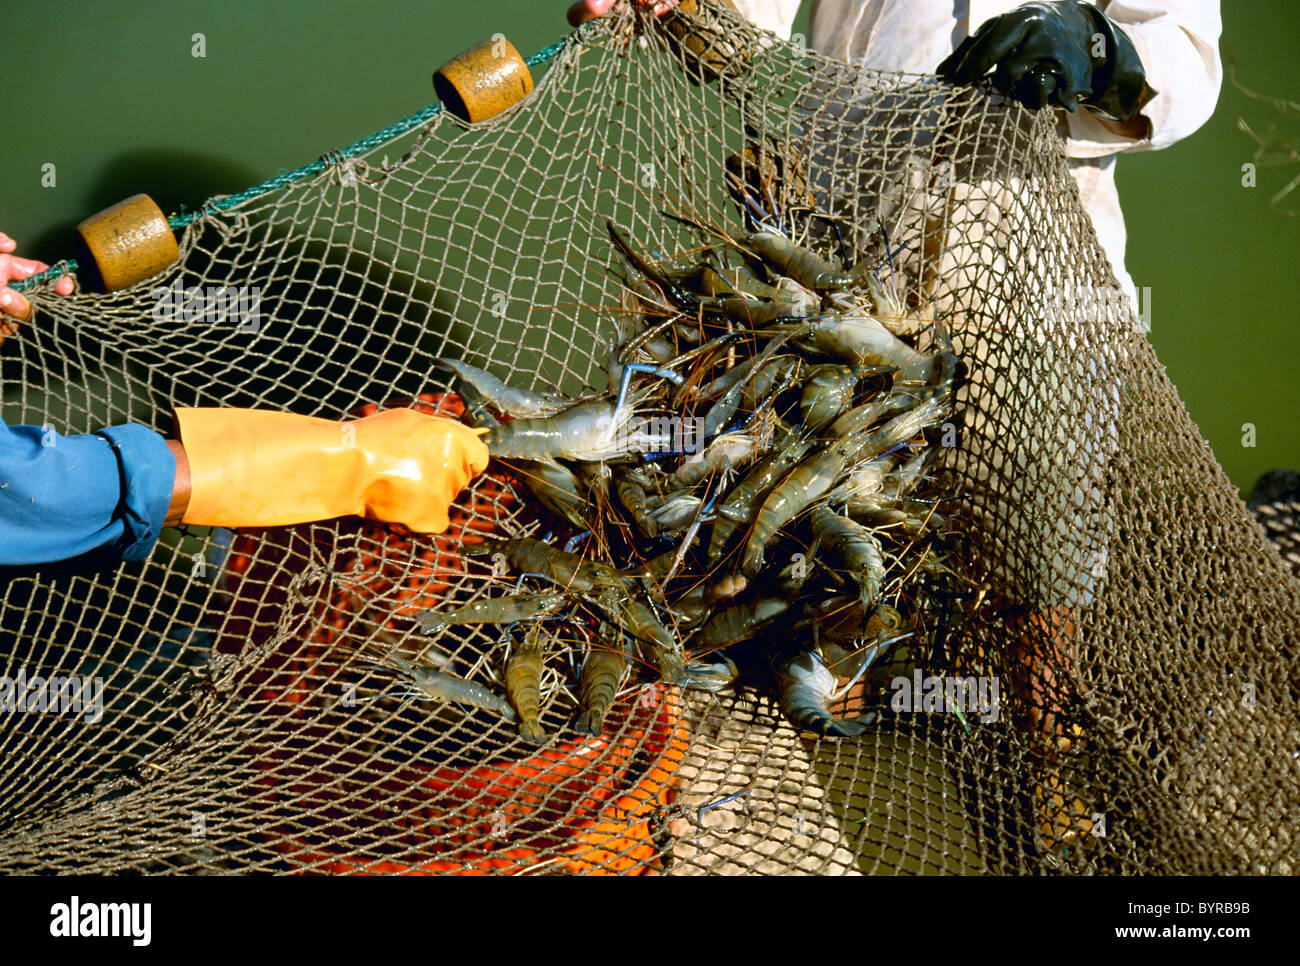 Giant Freshwater Prawns For Sale